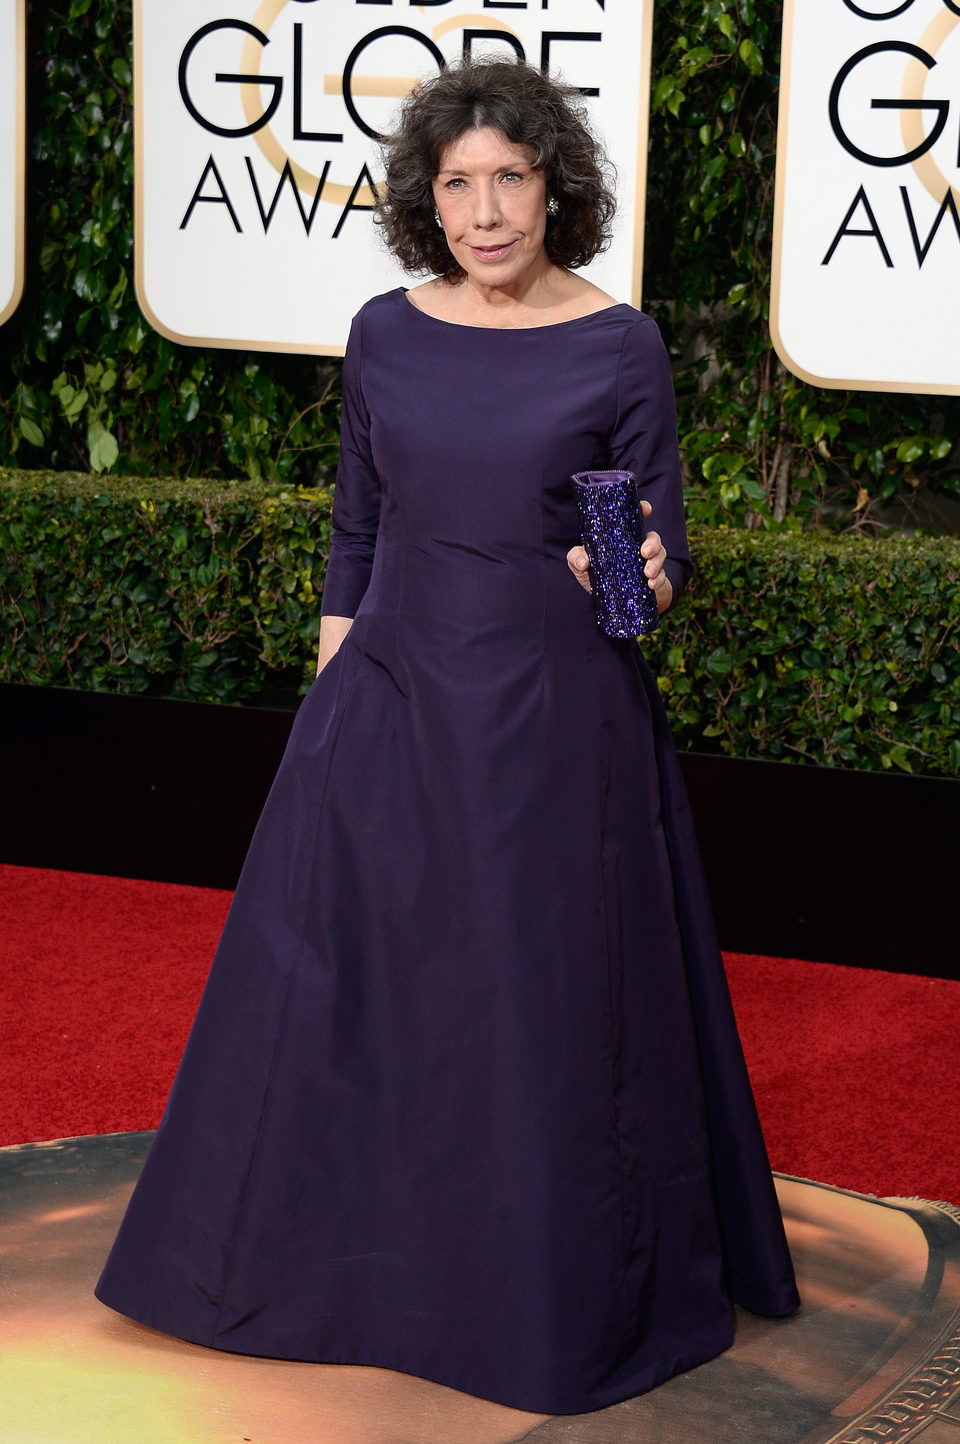 Lily Tomlin in the 2016 Golden Globes red carpet